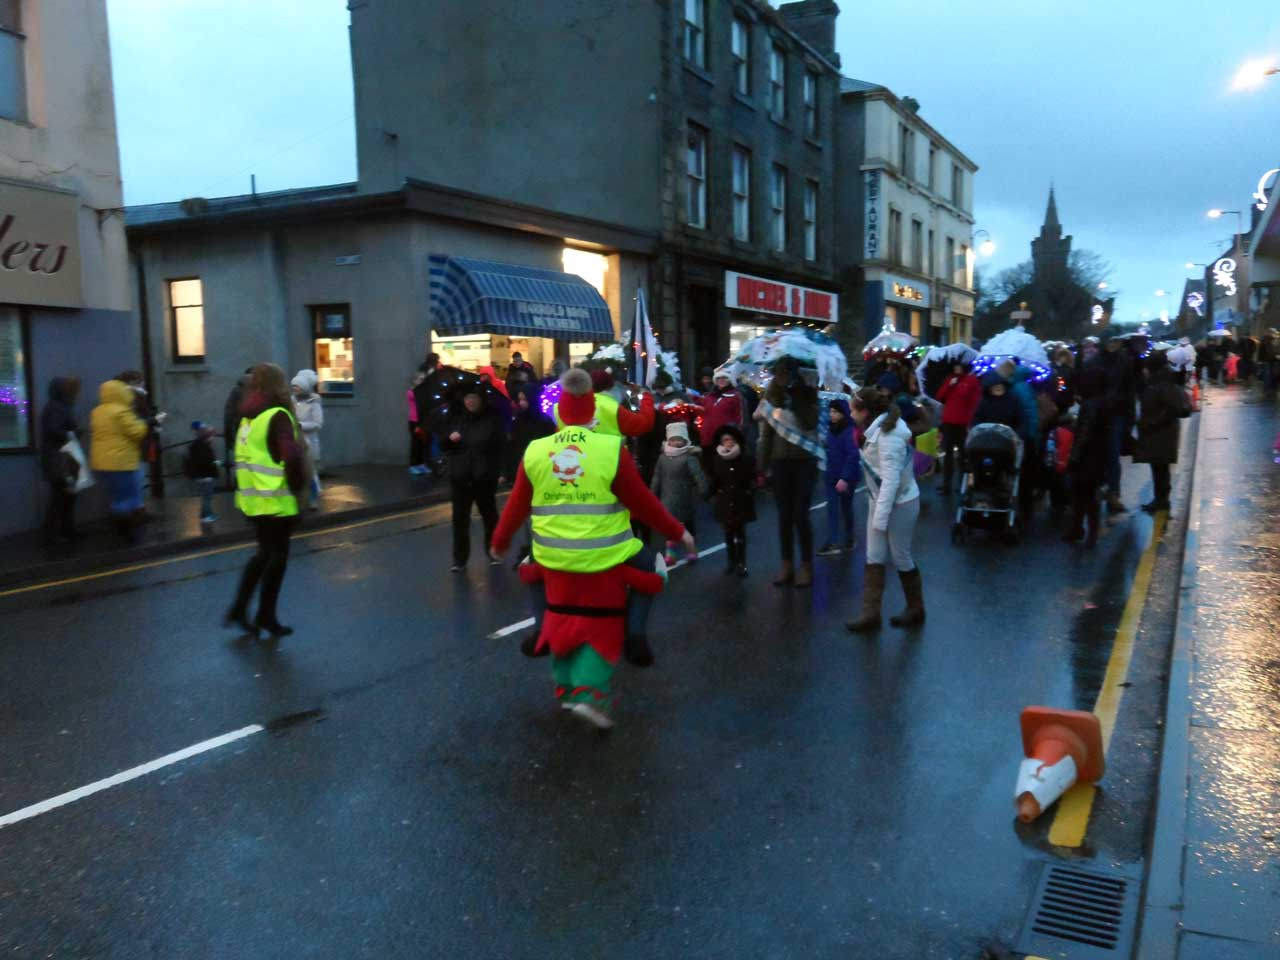 Photo: Christmas Umbrella Parade In Wick